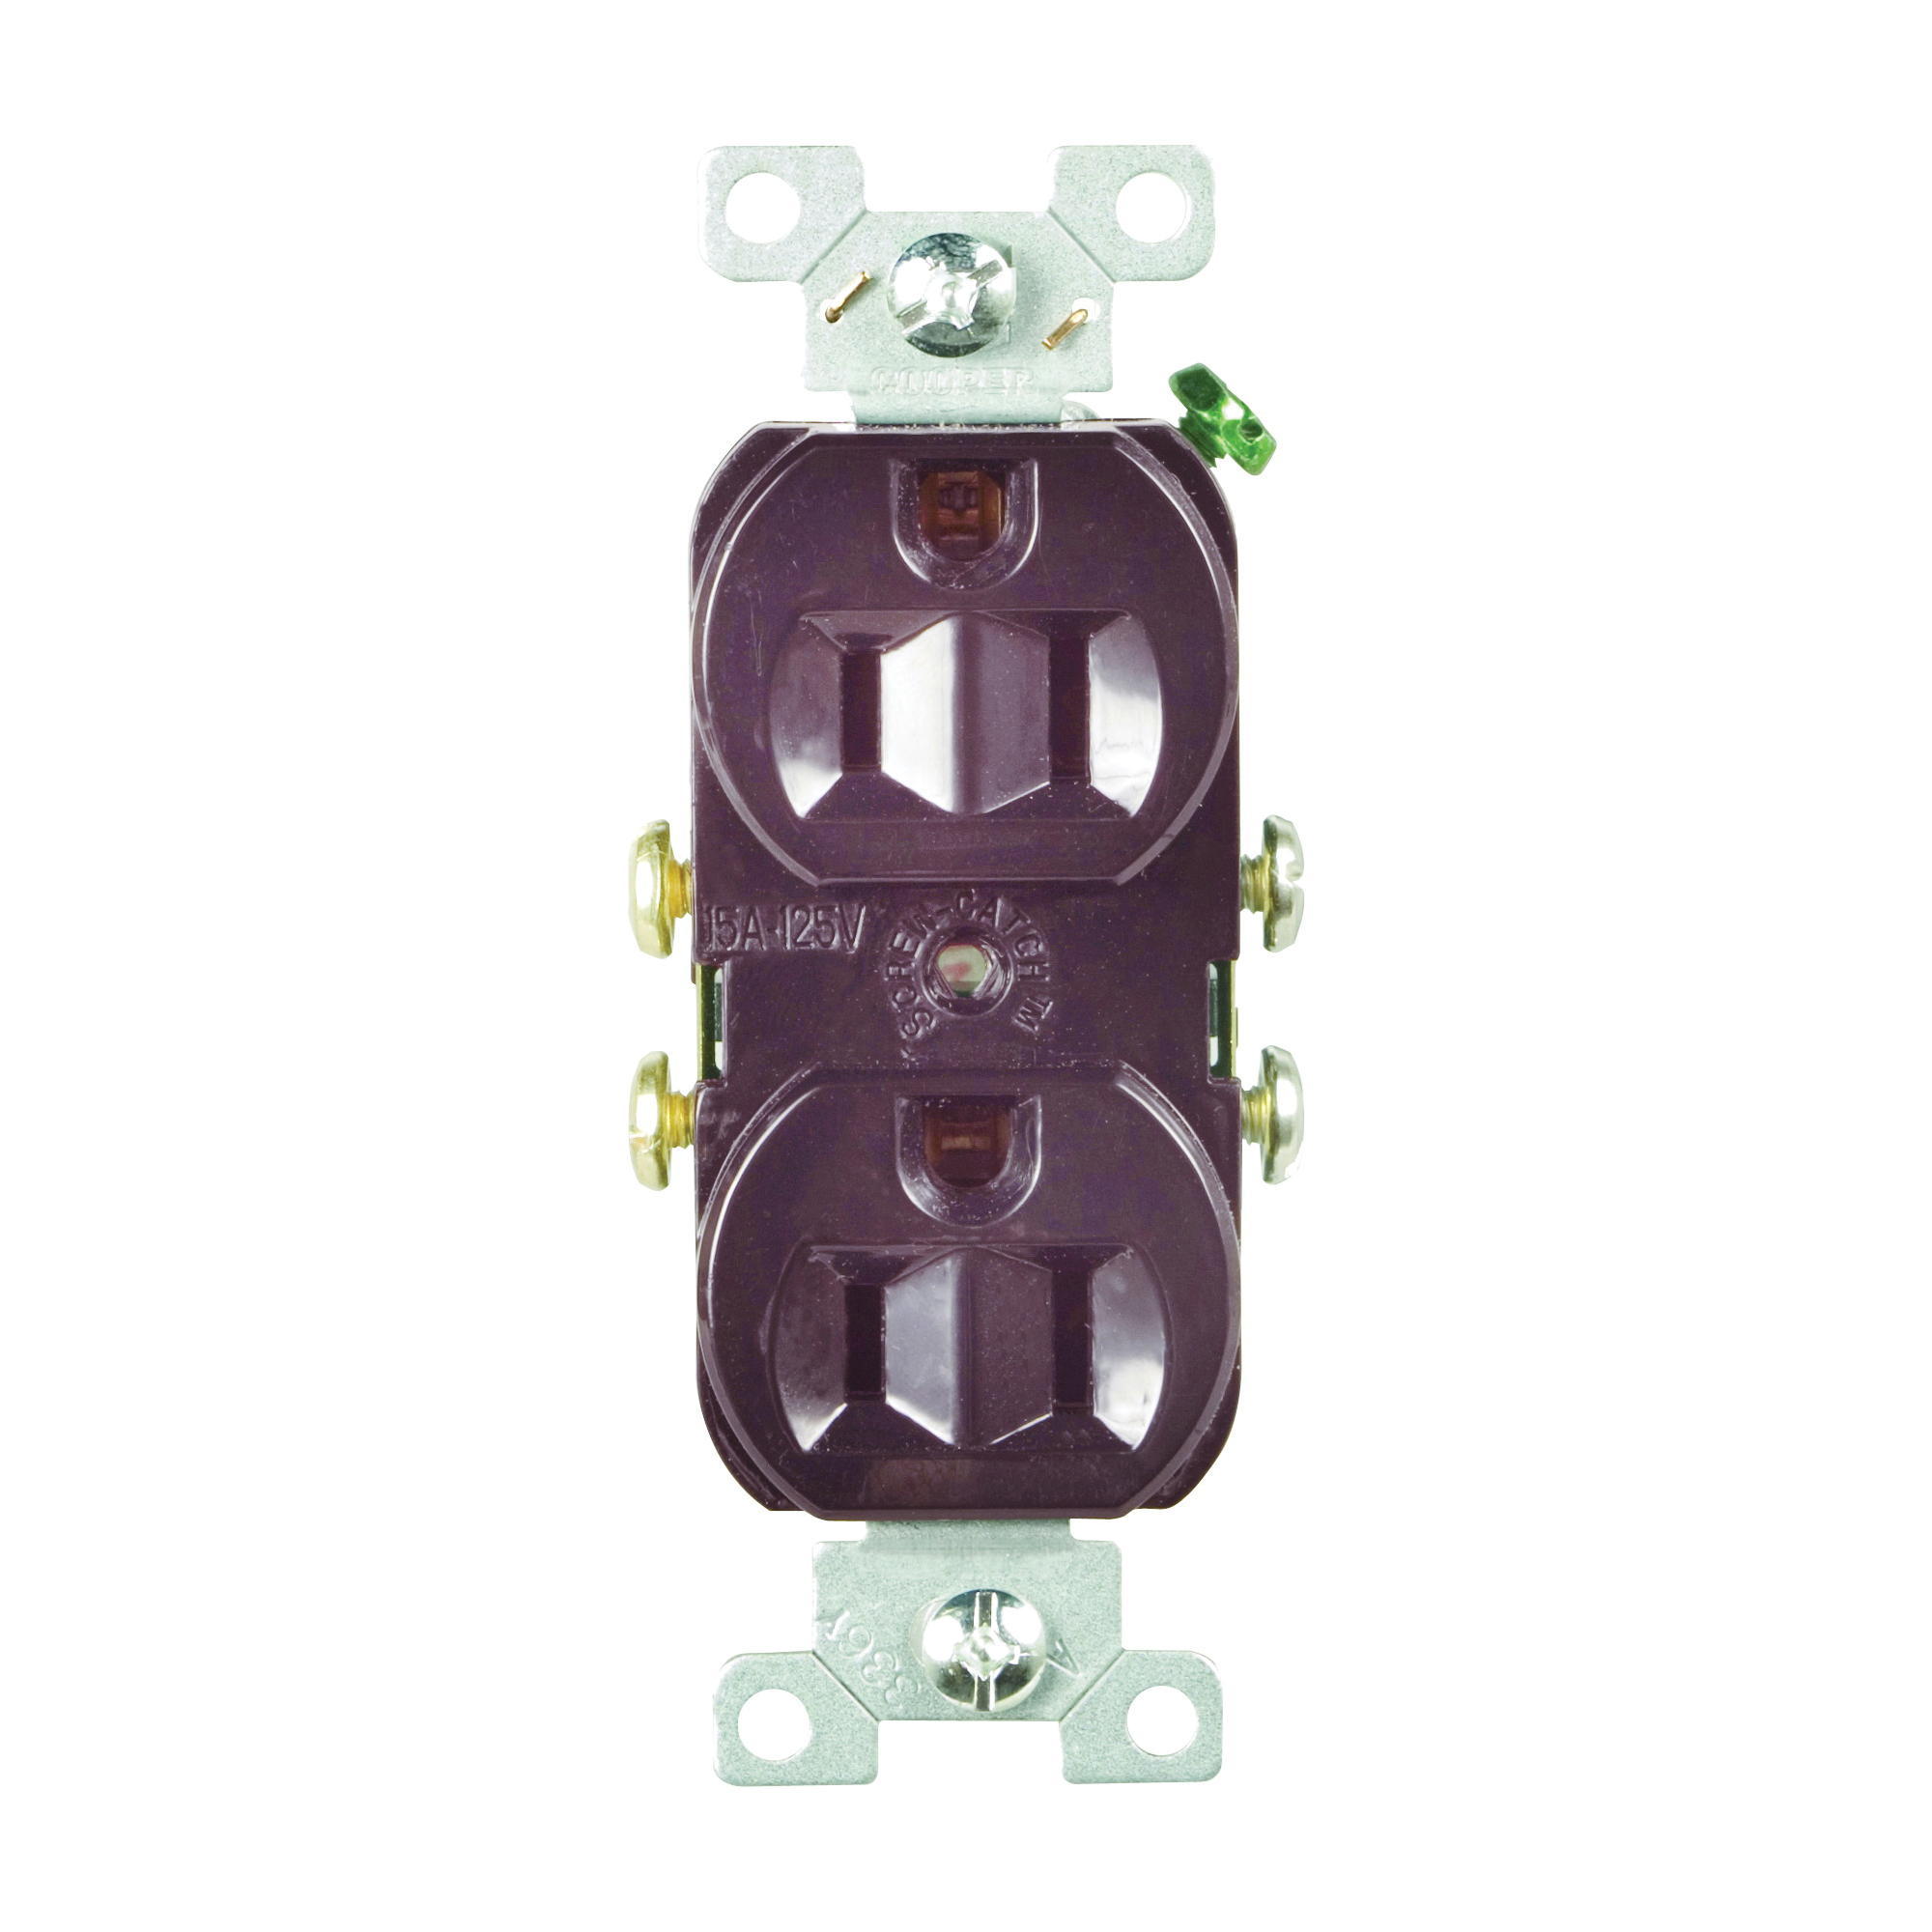 Picture of Eaton Wiring Devices CR15B Duplex Receptacle, 2-Pole, 15 A, 125 V, Side Wiring, NEMA: 5-15R, Brown